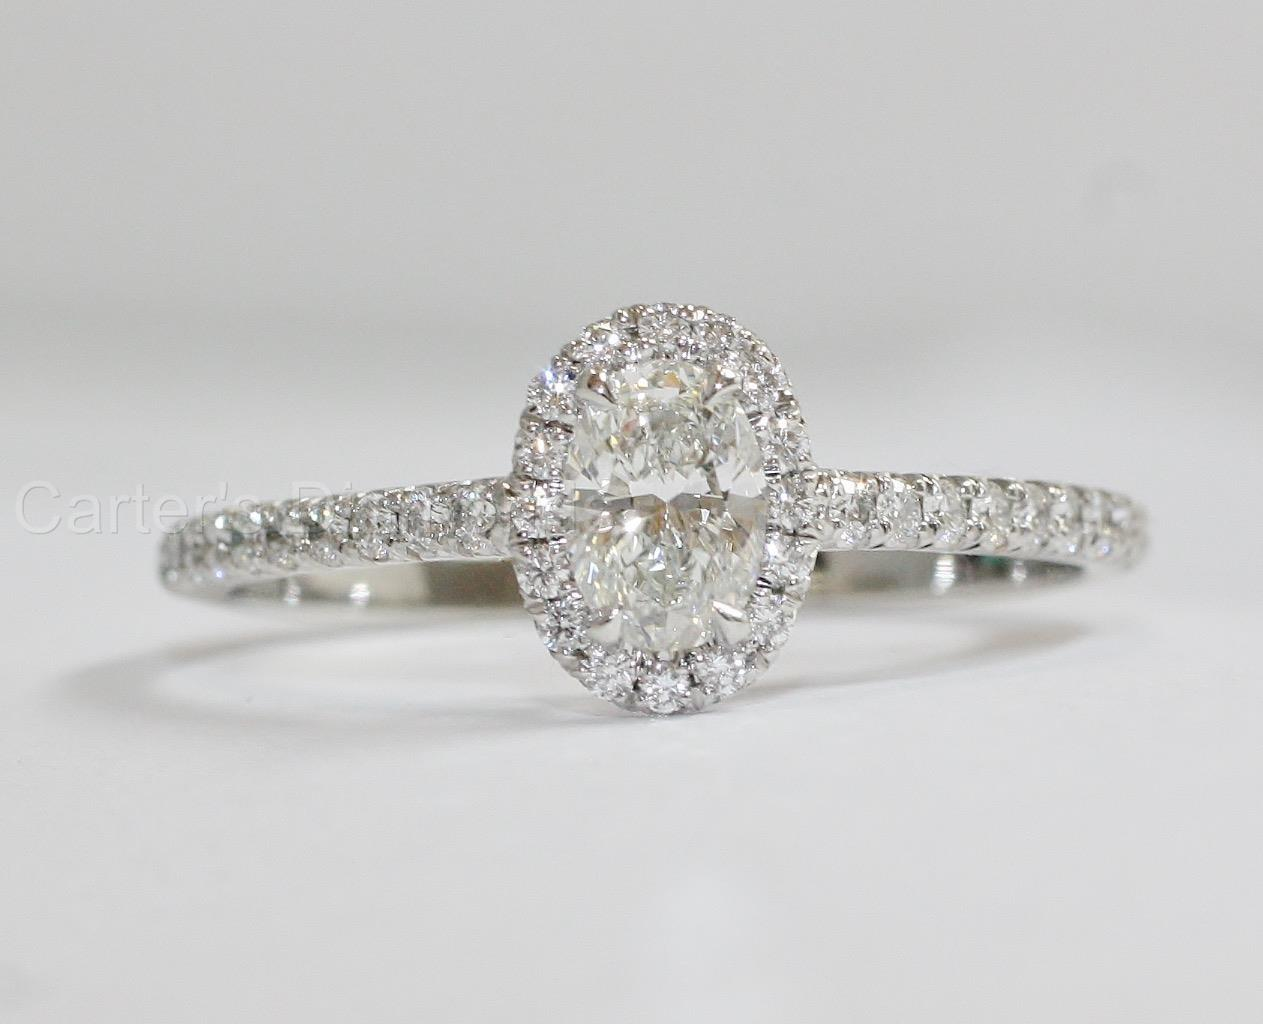 Tiffany Soleste Oval Diamond Halo Engagement Ring 70ctw w Boxes